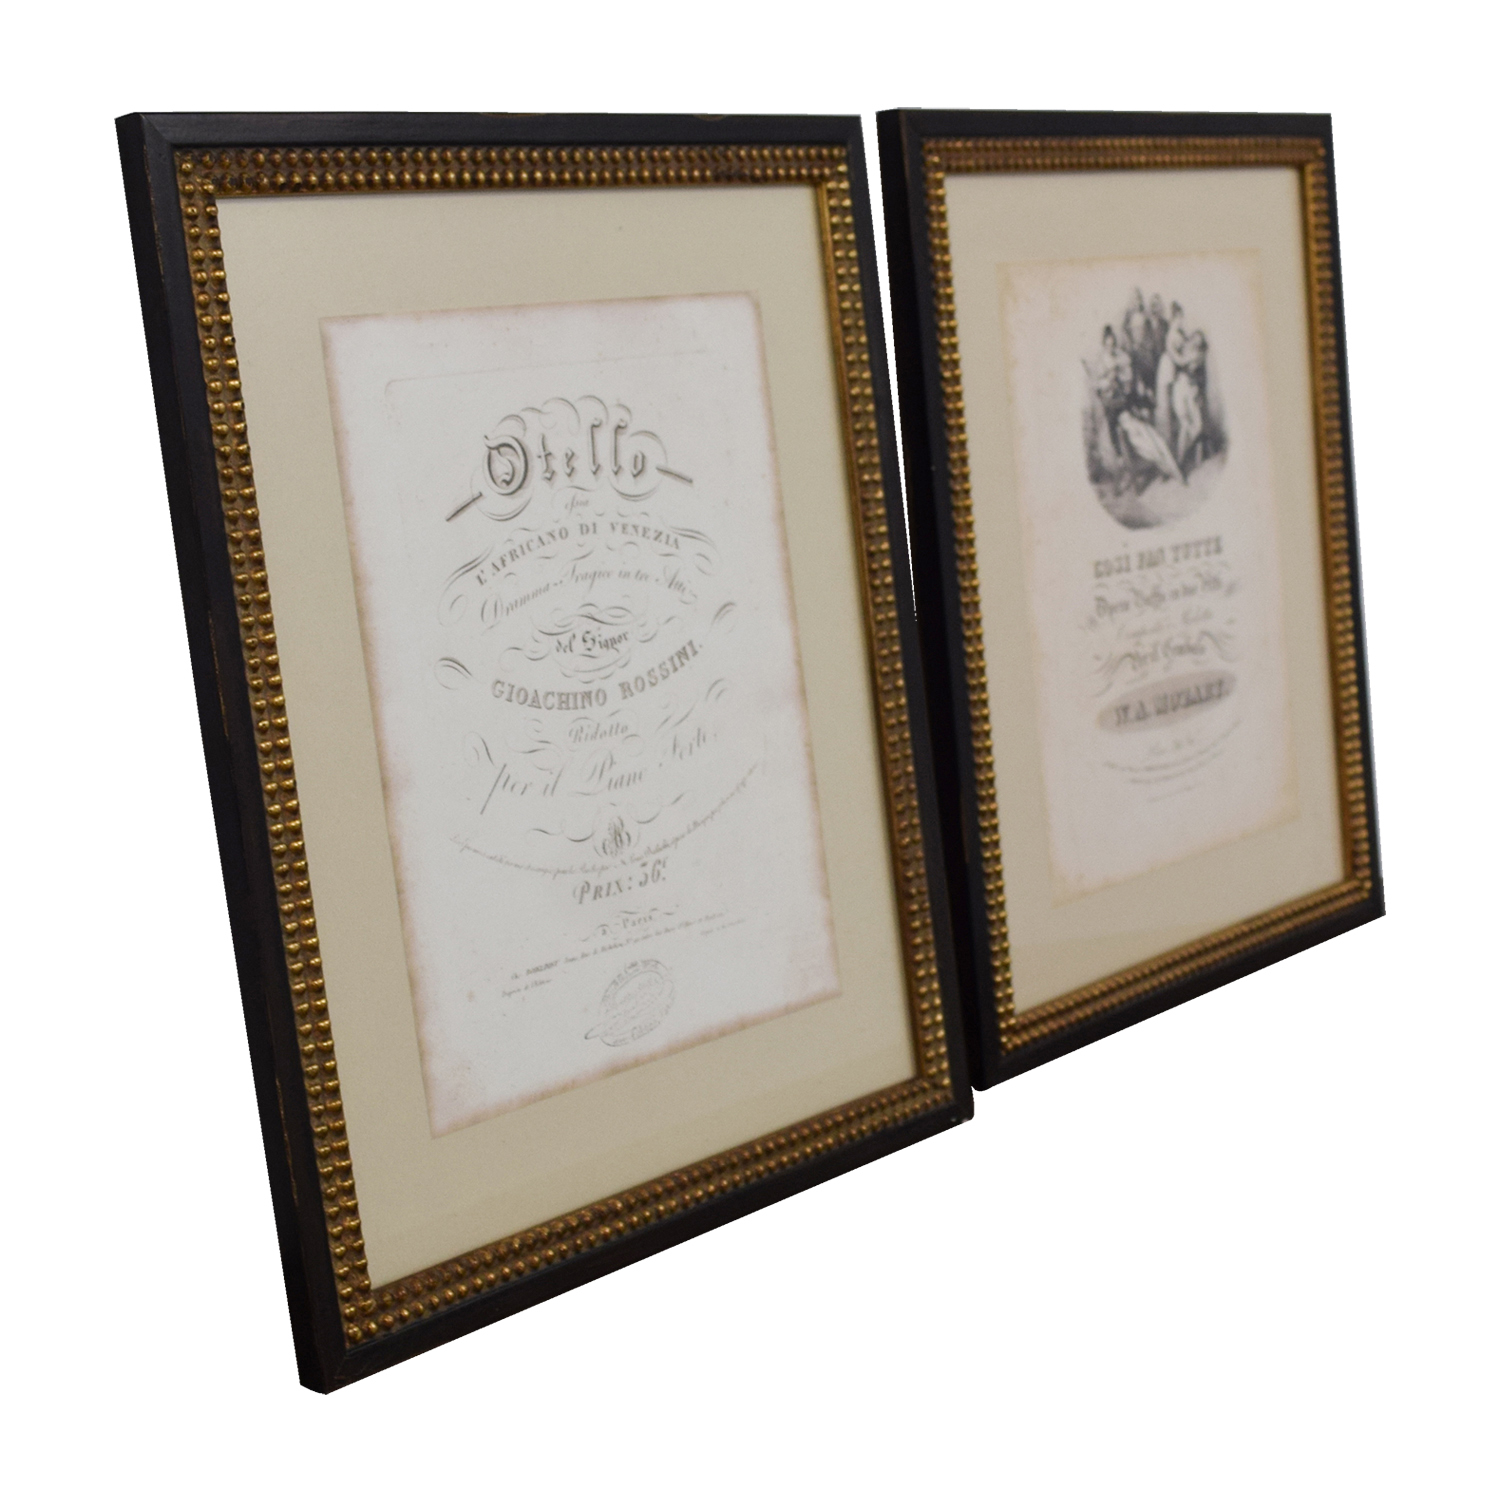 buy One Kings Lane Vintage Othello Mozart Opera Frames Prints One Kings Lane Wall Art